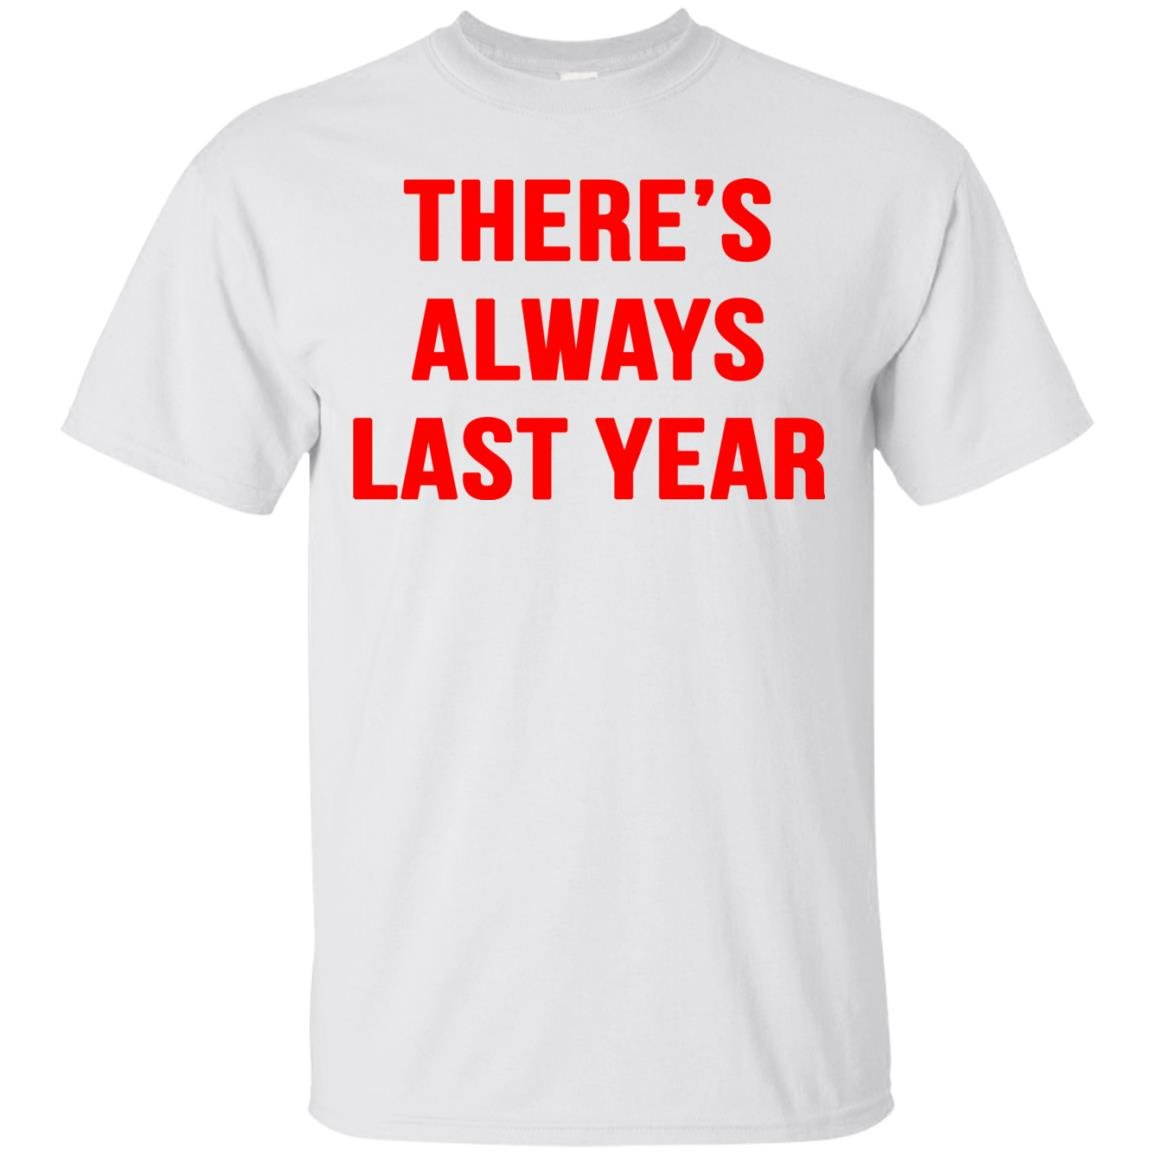 image 1915 - There's always last year t-shirt, long sleeve